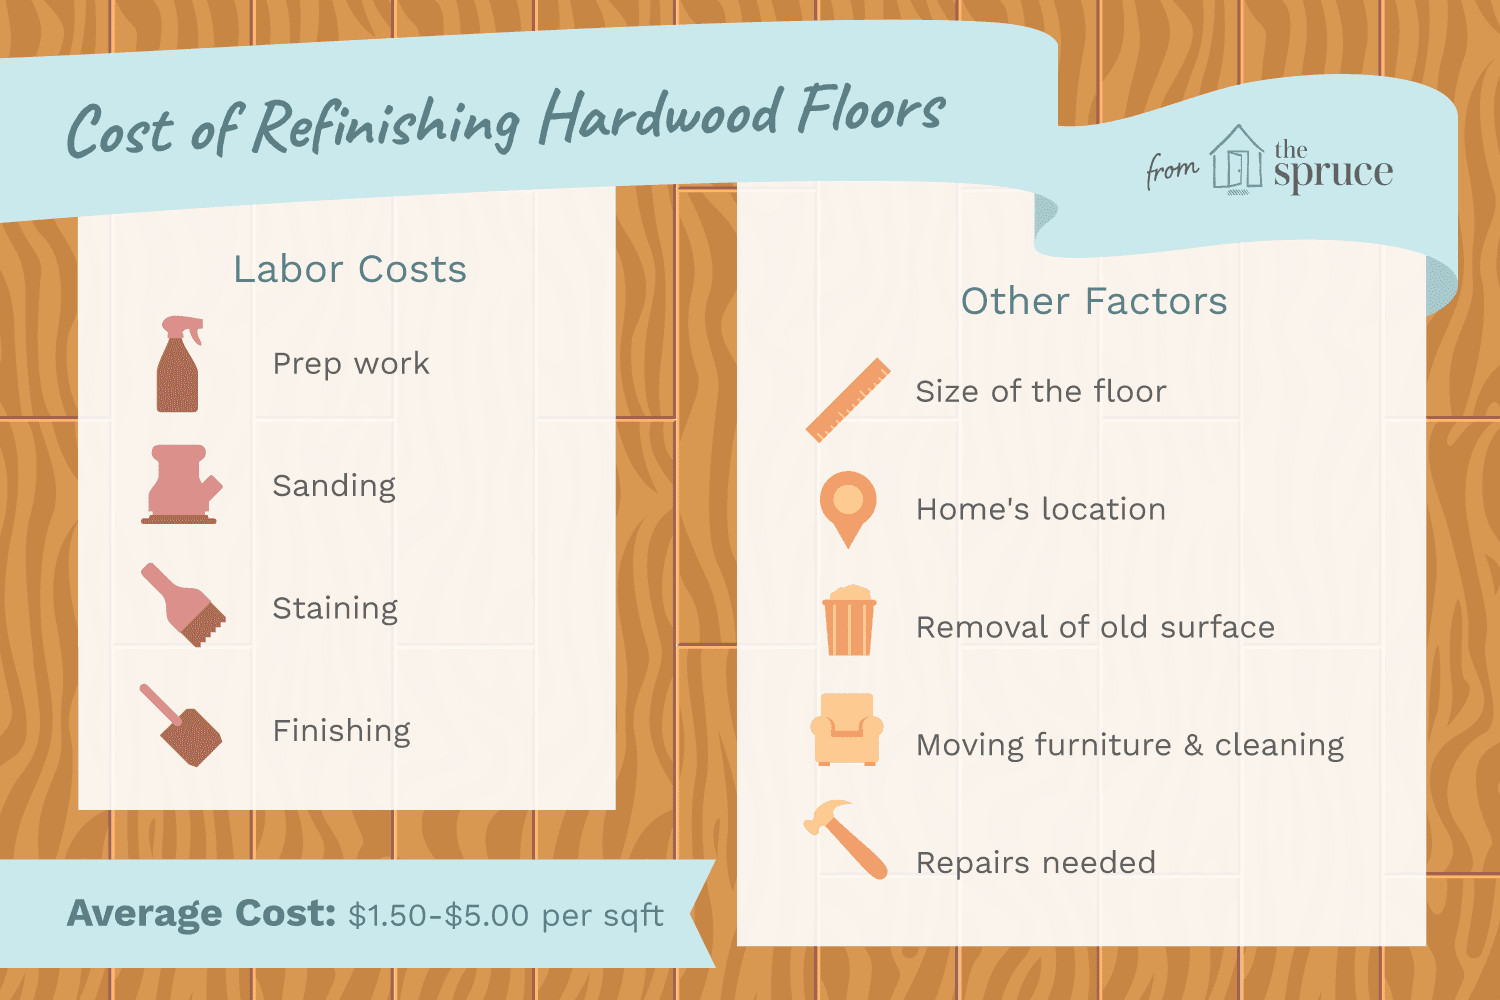 Hardwood Floor Refinishing Ct Cost Of the Cost to Refinish Hardwood Floors Inside Cost to Refinish Hardwood Floors 1314853 Final 5bb6259346e0fb0026825ce2